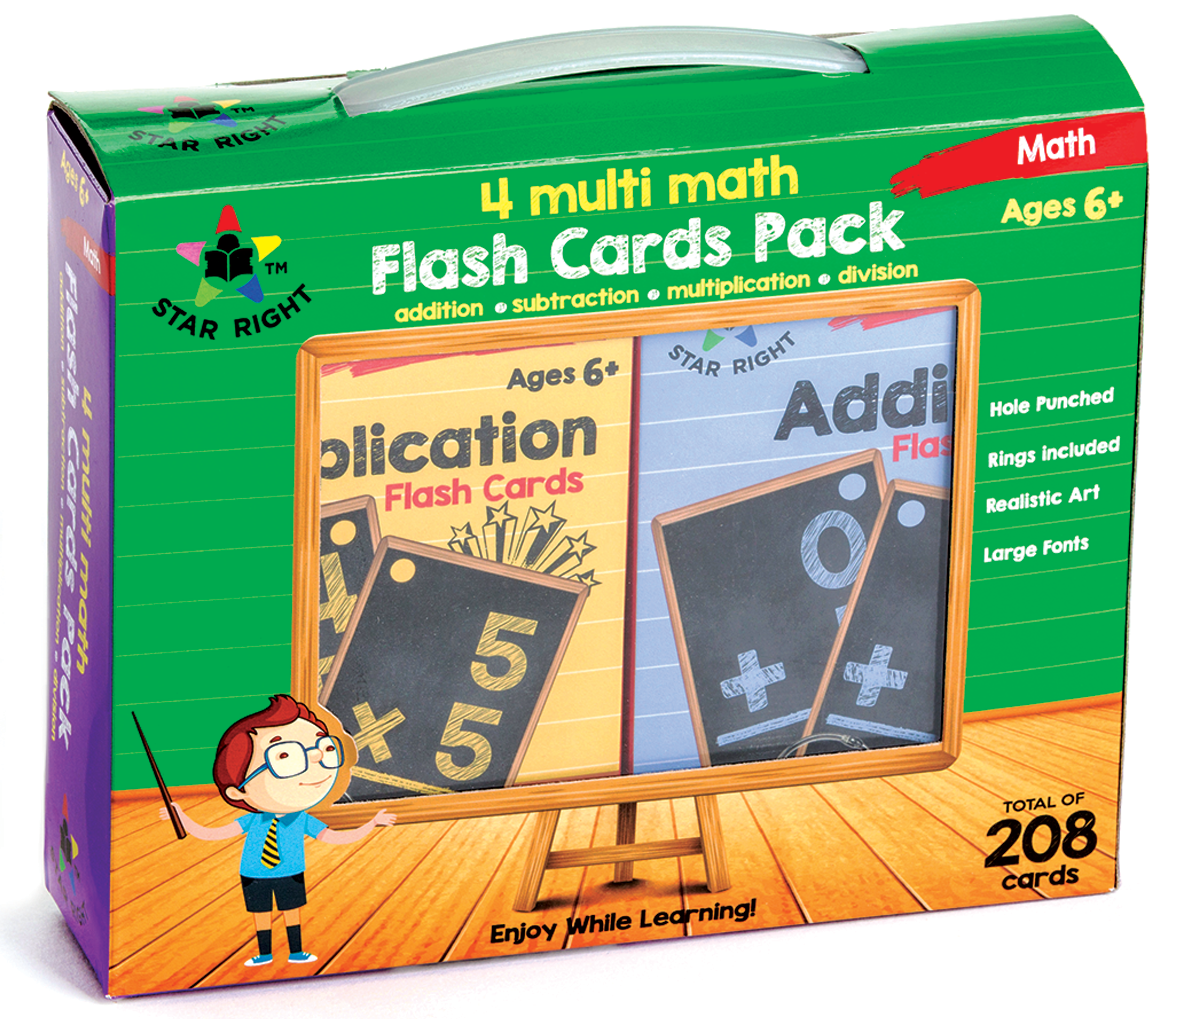 Star Right Multi Math Flash Cards, Set Of 4 - Multiplication, Addition,  Division, Subtraction - Value Pack Flash Cards With Rings For Pre K - K -